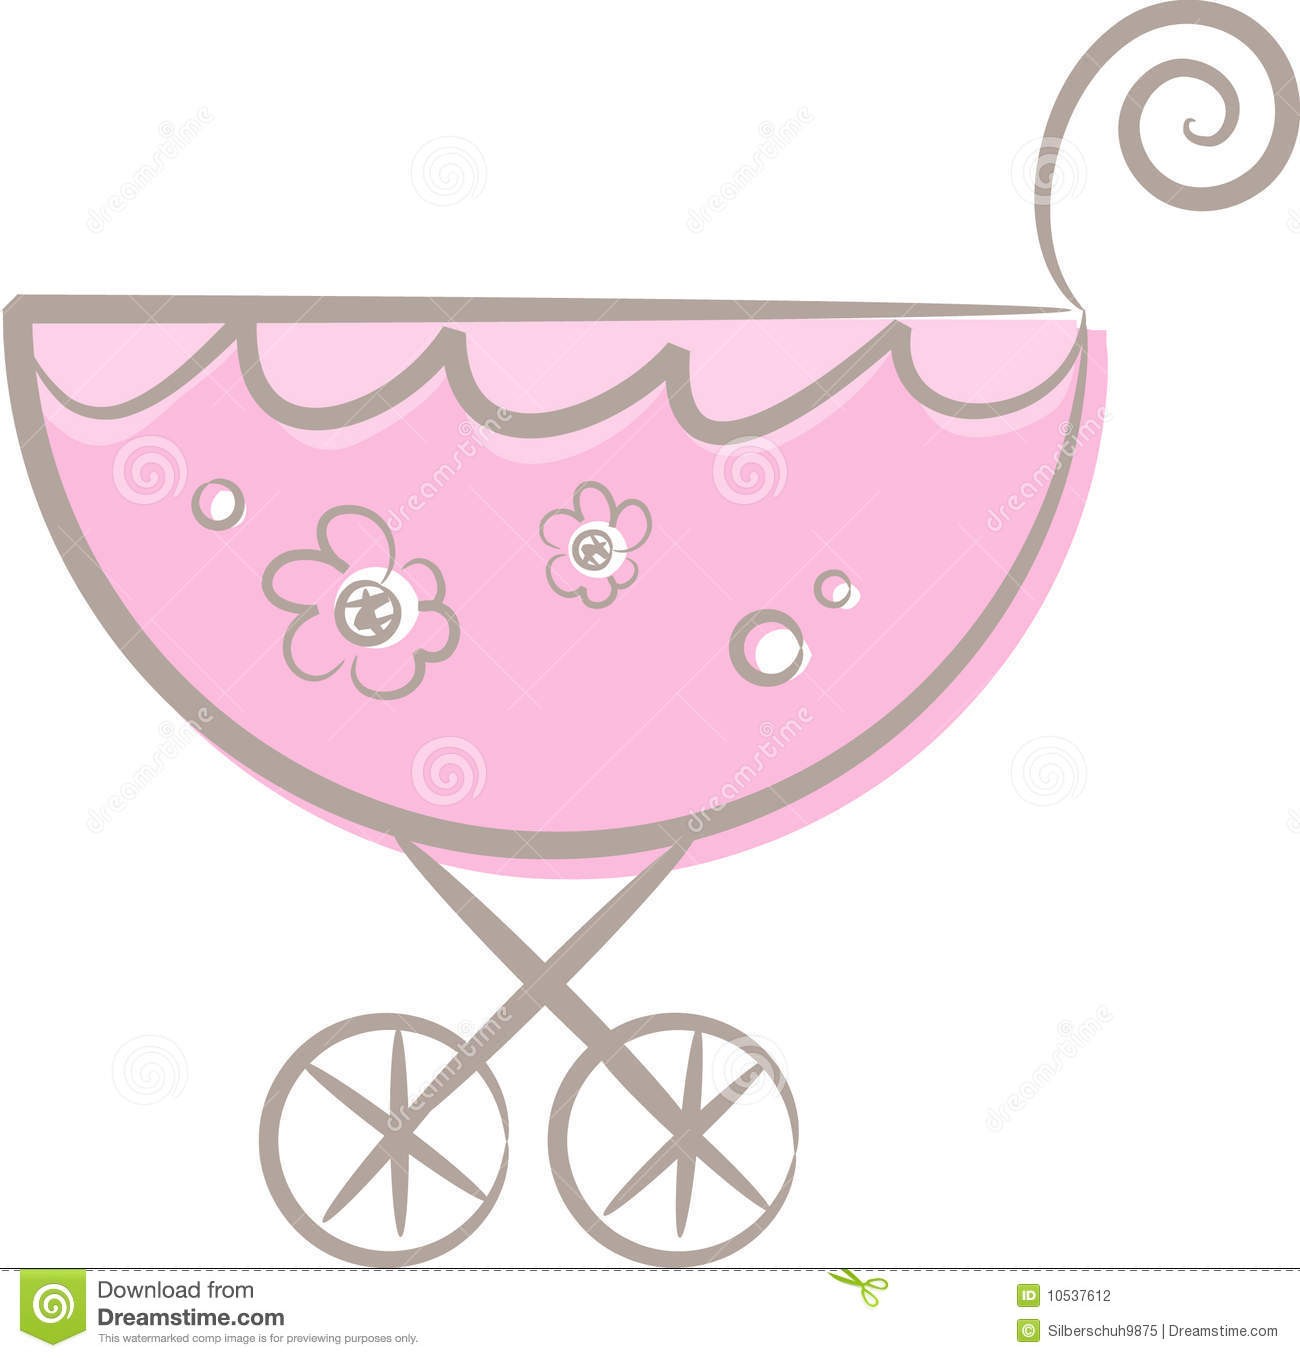 Baby girl stroler clipart graphic freeuse download Baby girl in stroller clipart - ClipartFest graphic freeuse download